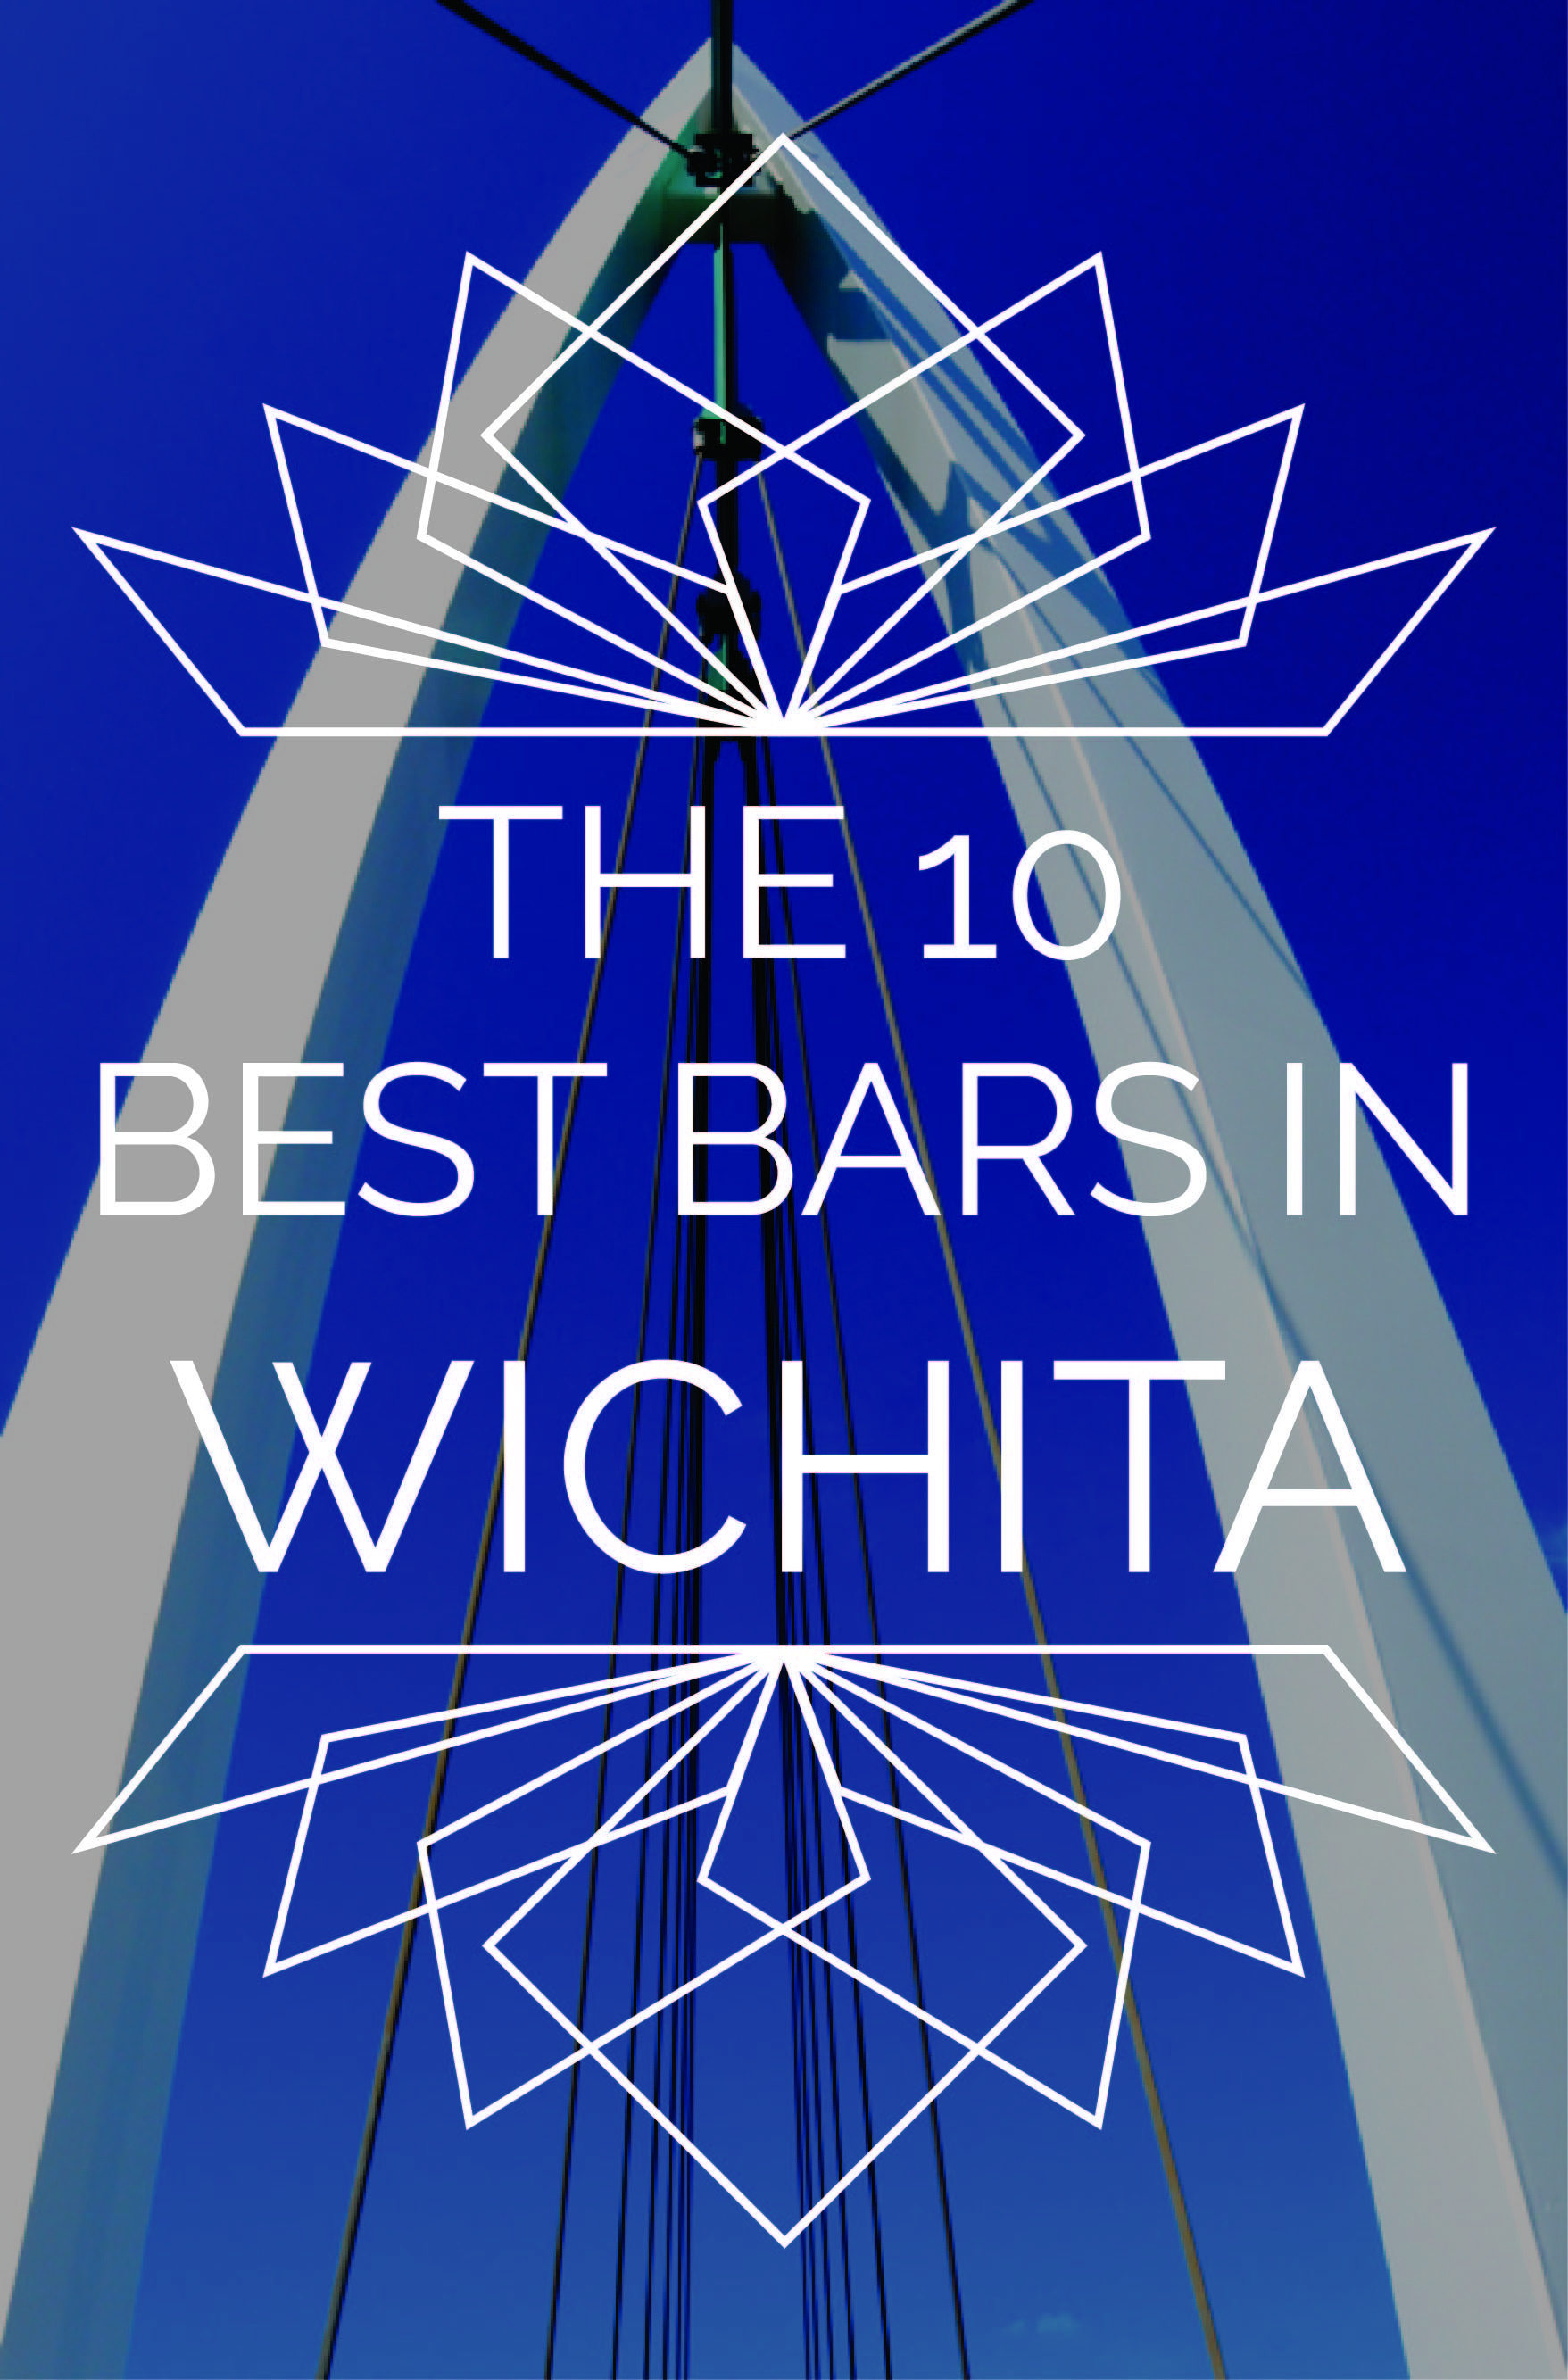 Best bars in wichita